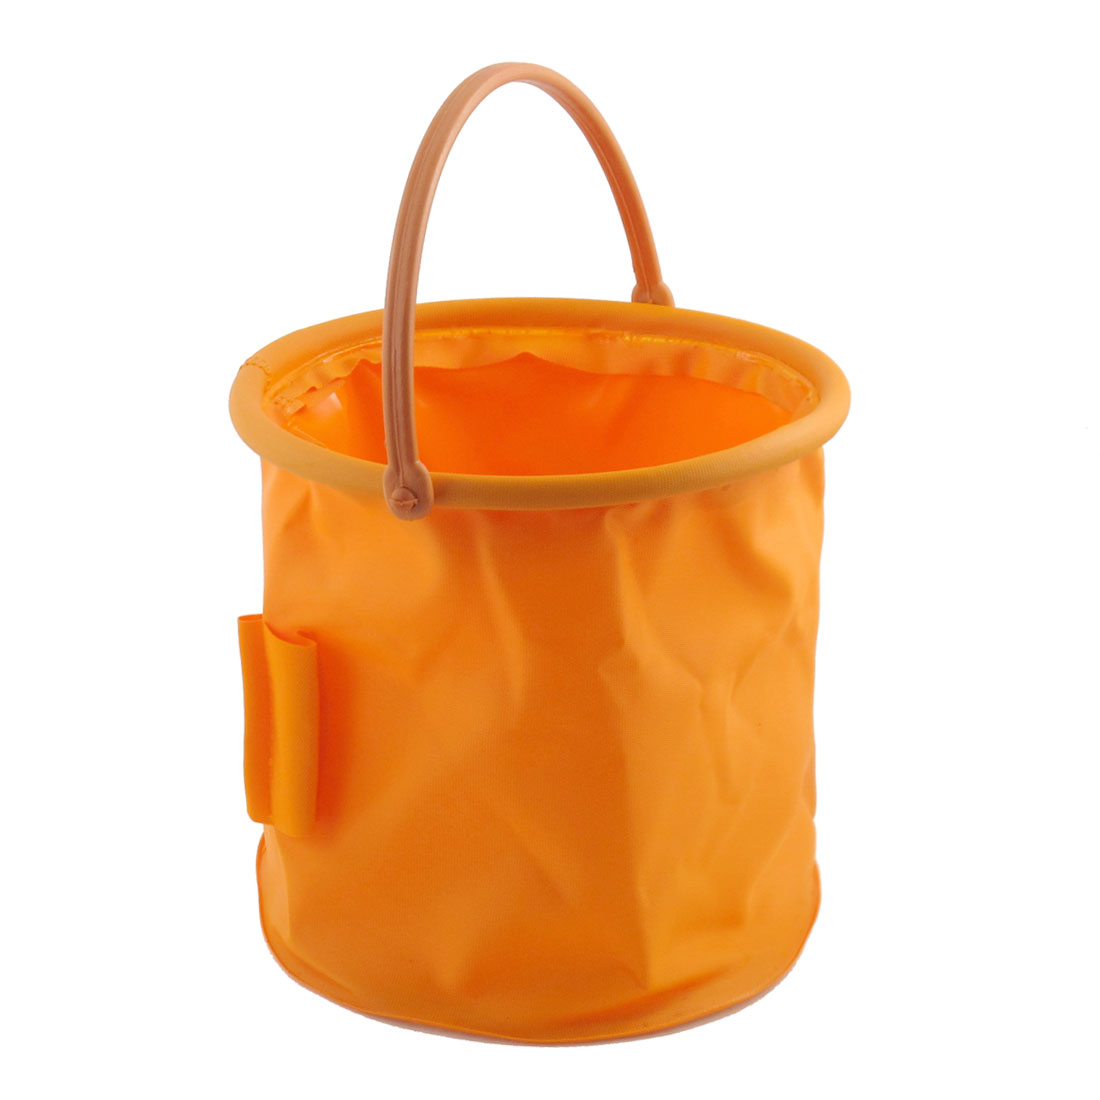 Portable Orange PVC Foldable Round Shaped Fish Pail Water Bucket 4.5L